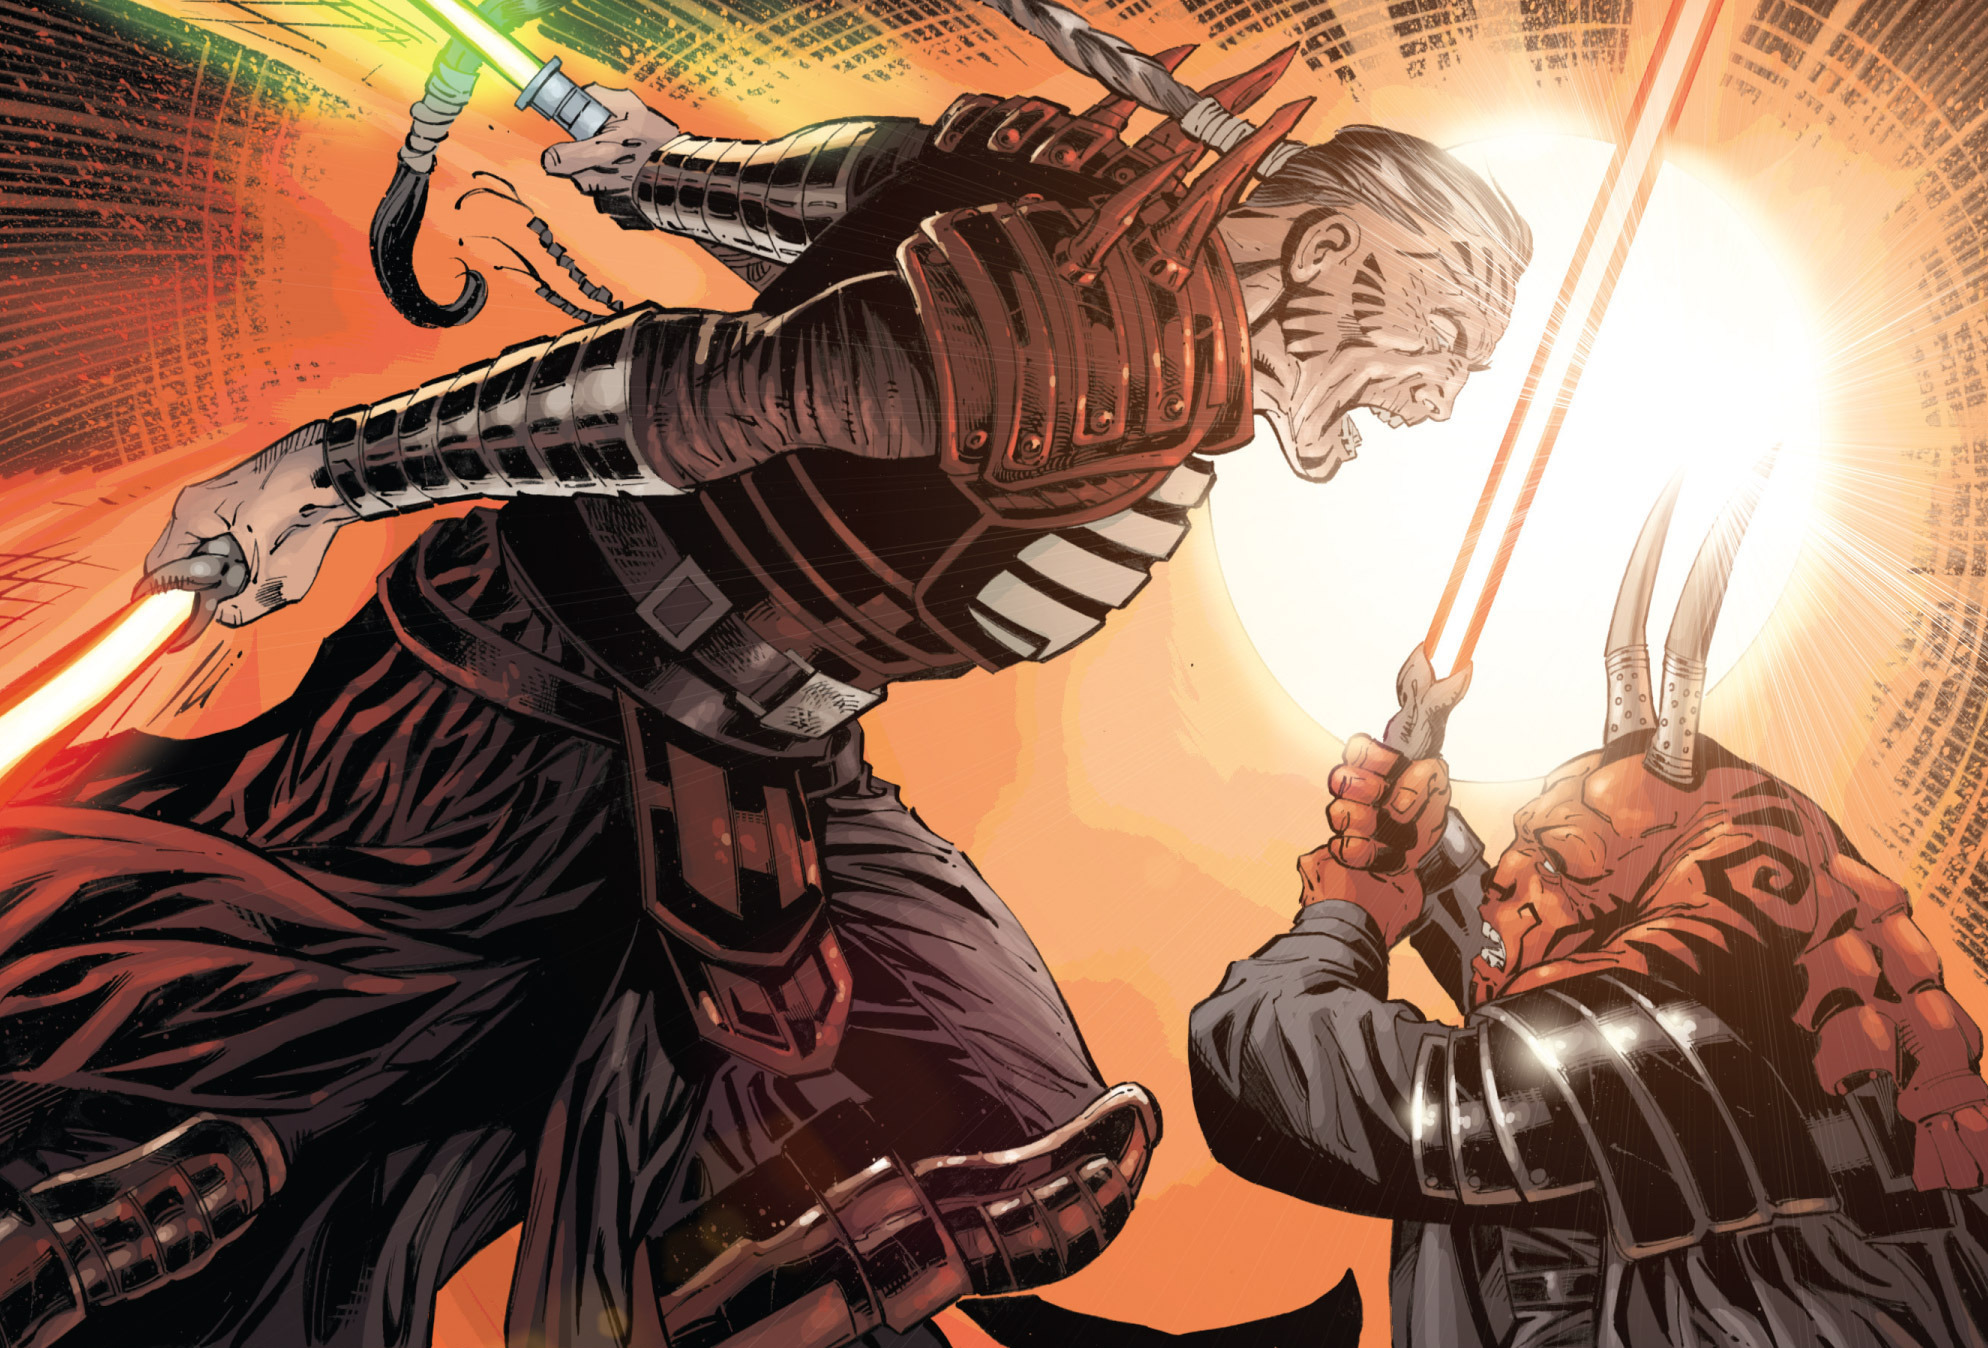 Darth Krayt vs Darth Talon Darth Krayt Defeating Darth